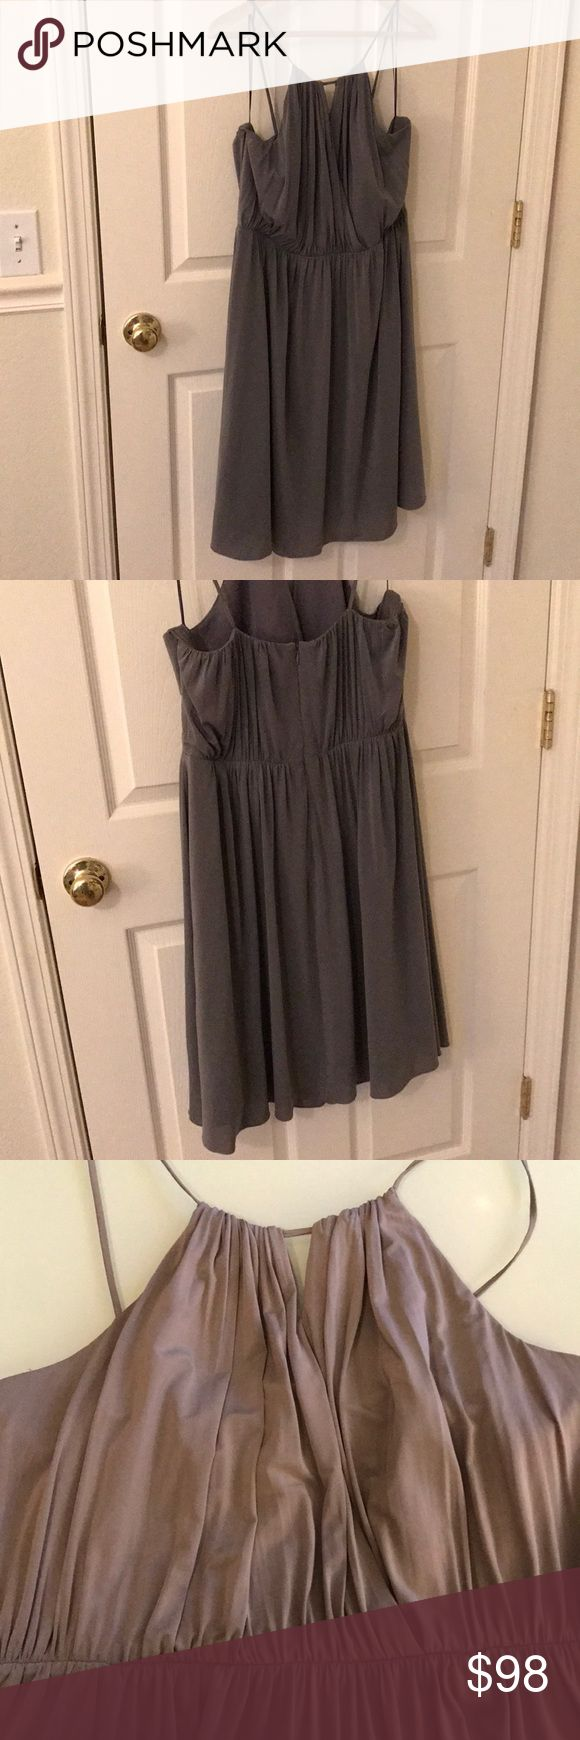 J. Crew Laila Dress Mercury Grey Size 12 J. Crew Laila Dress in liquid jersey. Super comfy and flowy.  Color: Mercury Grey EUC.   Perfect for a wedding or night out or pair with a black blazer for the office.  Accepting reasonable offers J. Crew Dresses